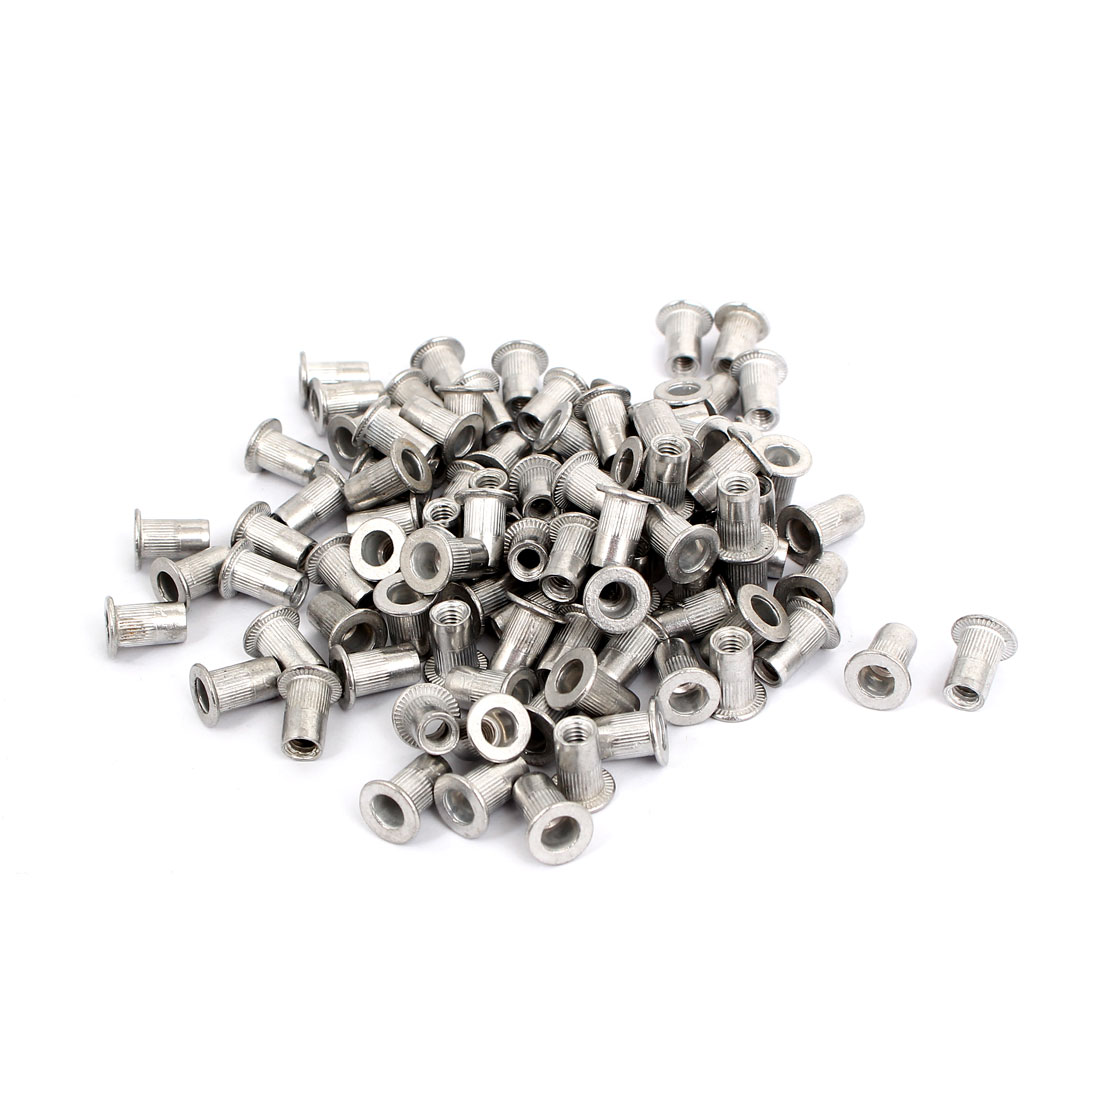 M4 Thread Aluminum Rivet Nut Insert Nutsert 100pcs